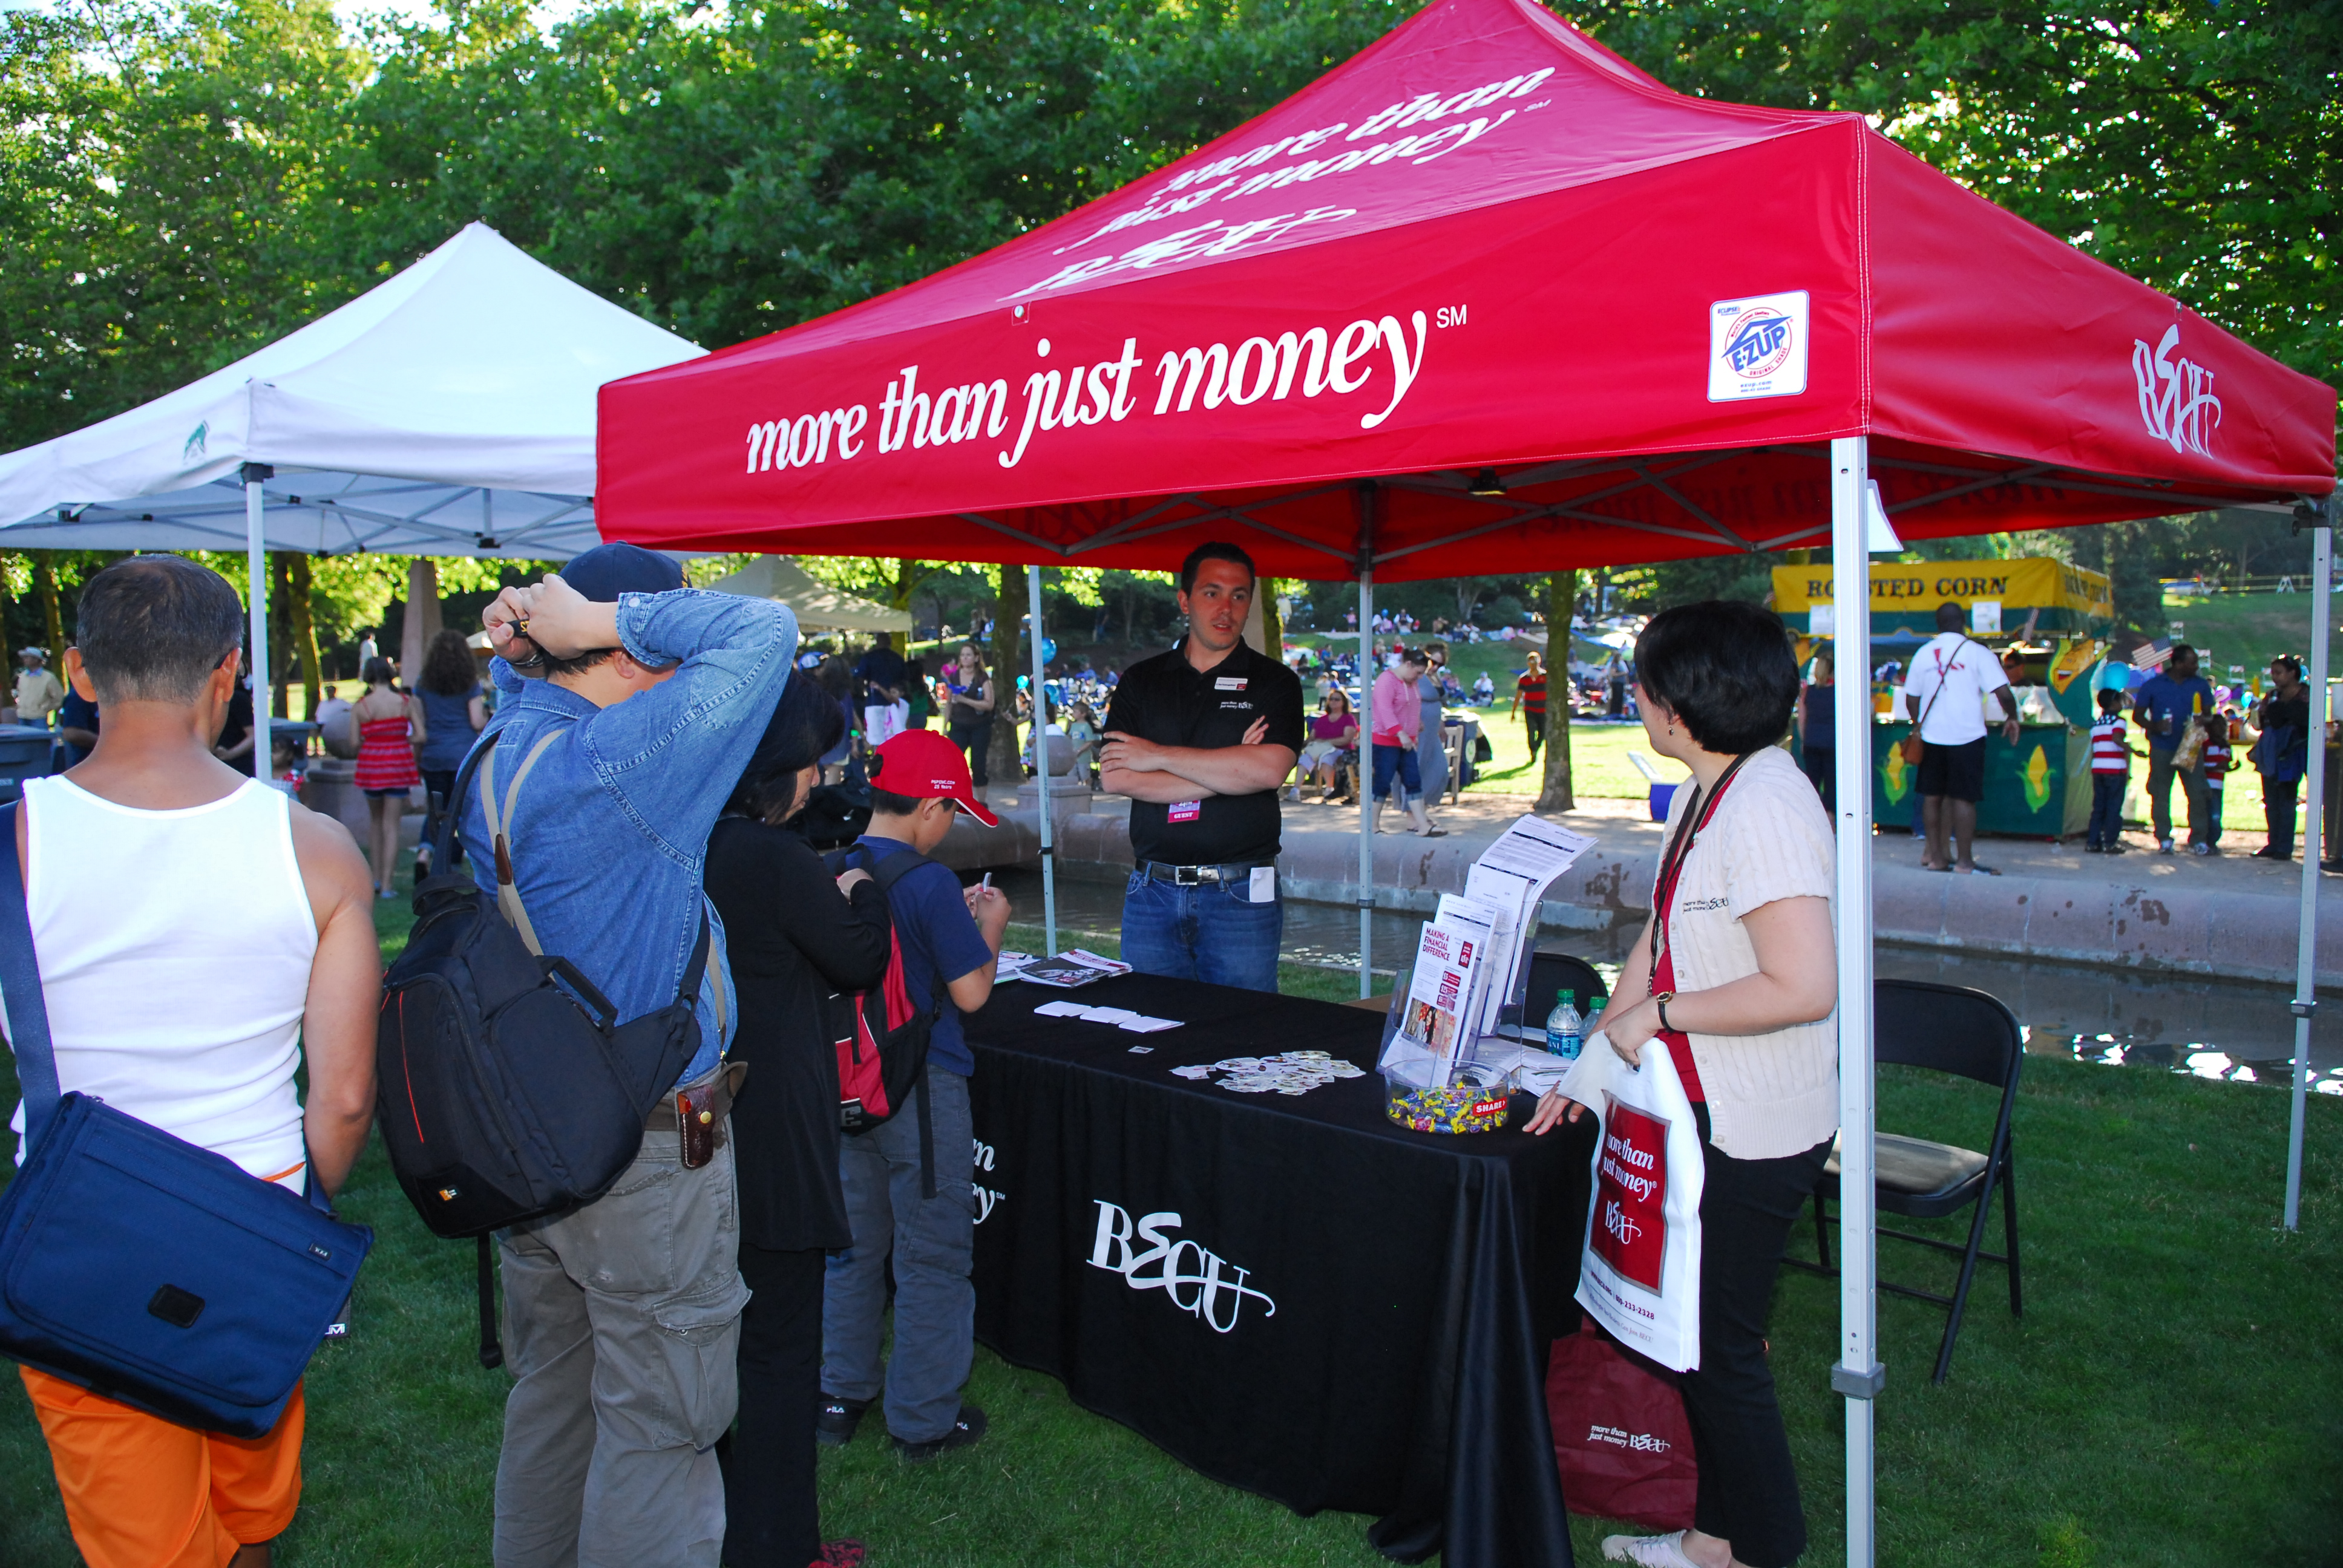 BECU booth at City of Bellevue's Fourth of July celebration